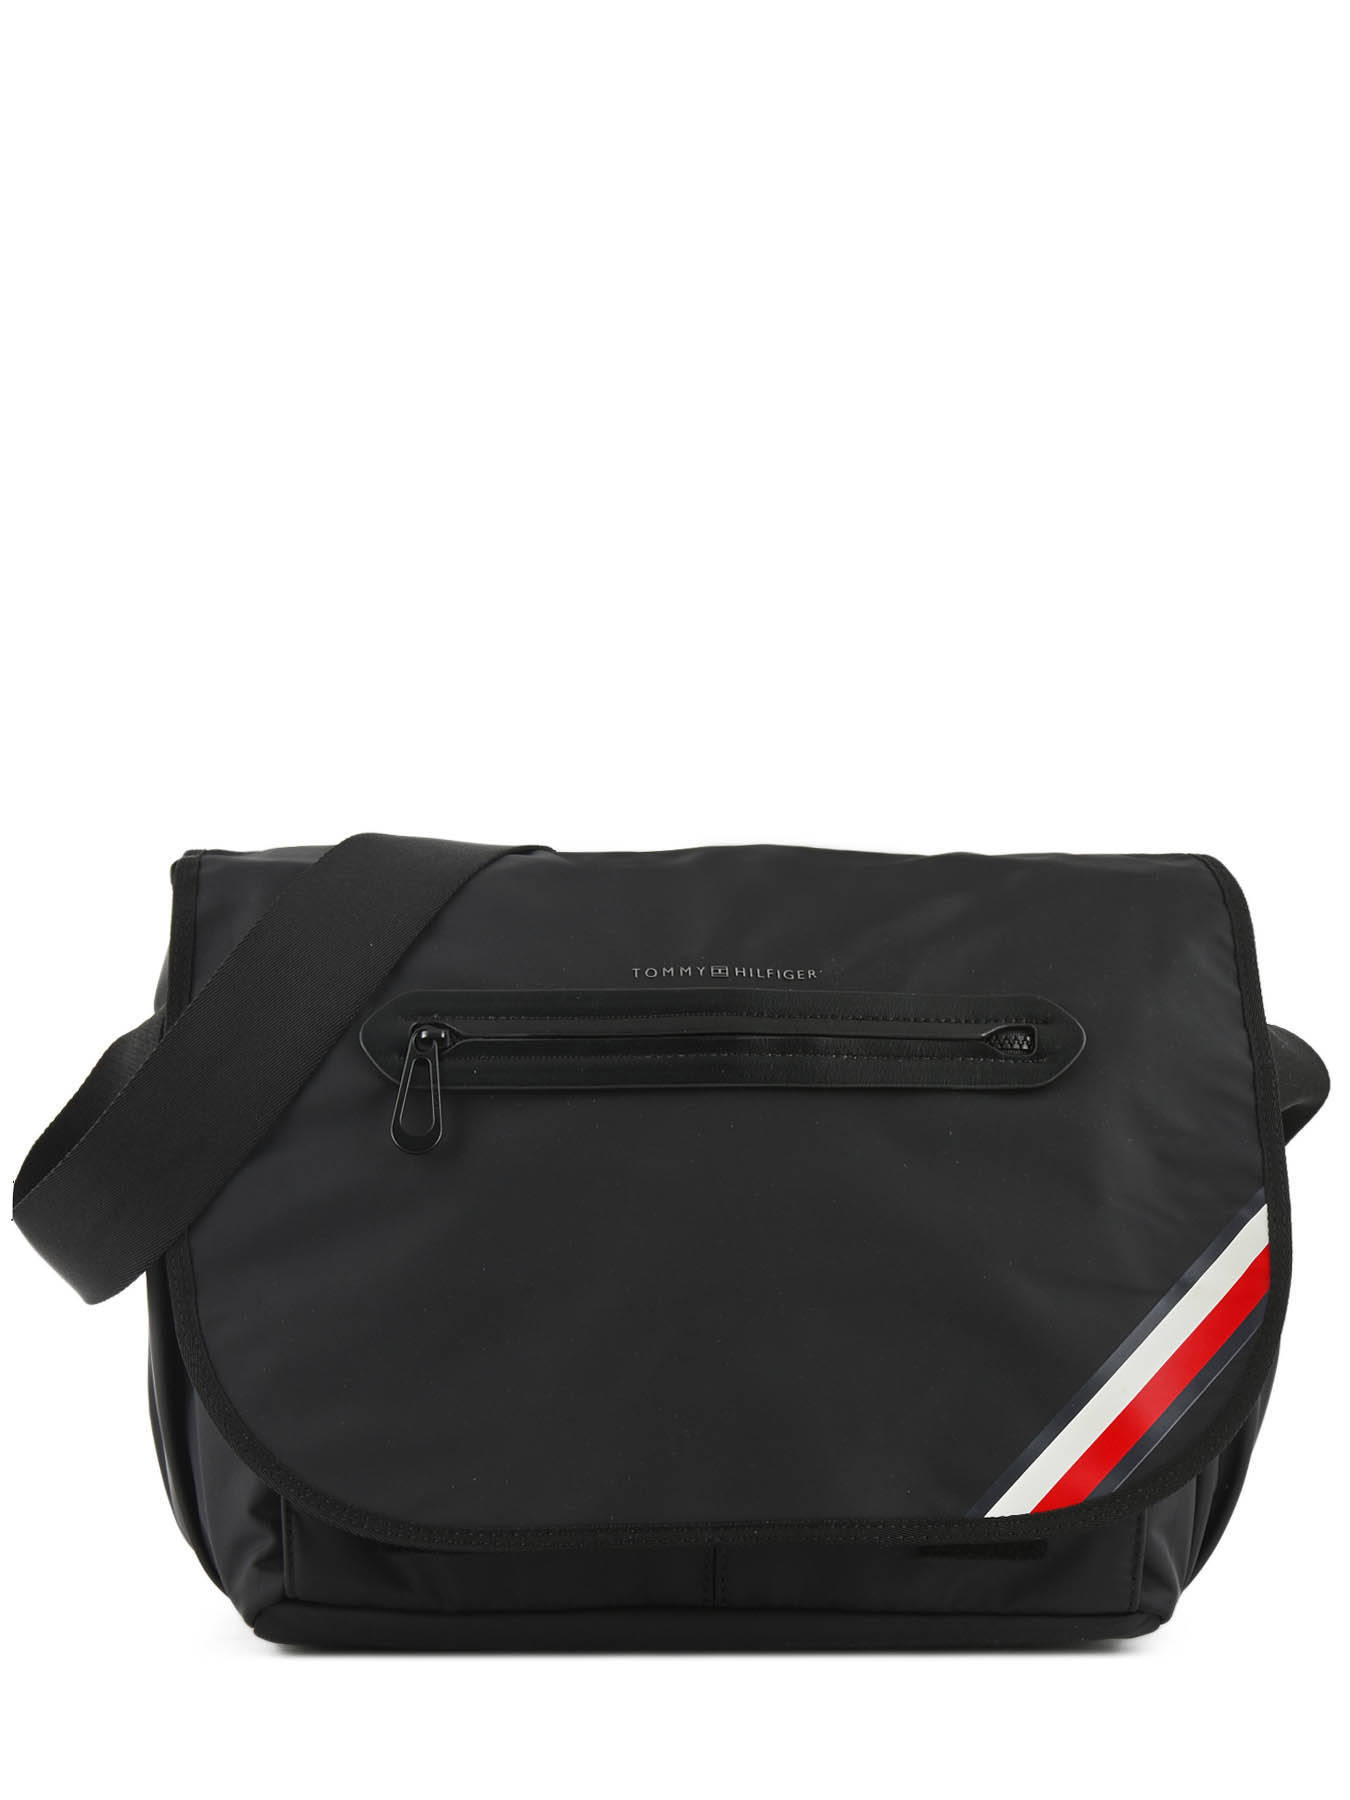 c366aa9eb4 ... Messenger Bag Tommy hilfiger Black easy nylon AM03591 ...